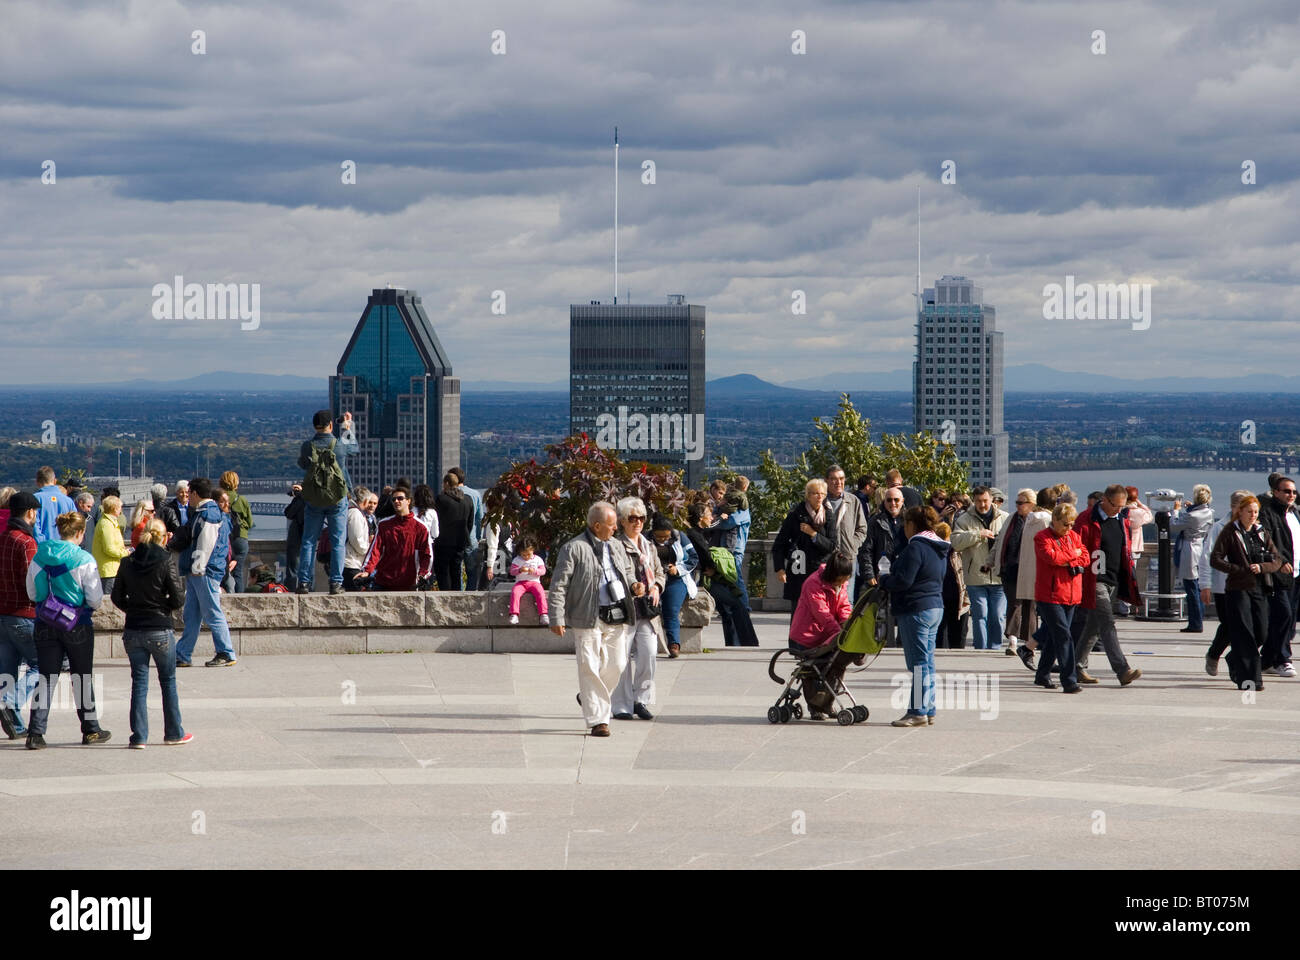 Tourists enjoying the view on the Montreal skyline from the Kondiaronk viewpoint on Mount Royal - Stock Image